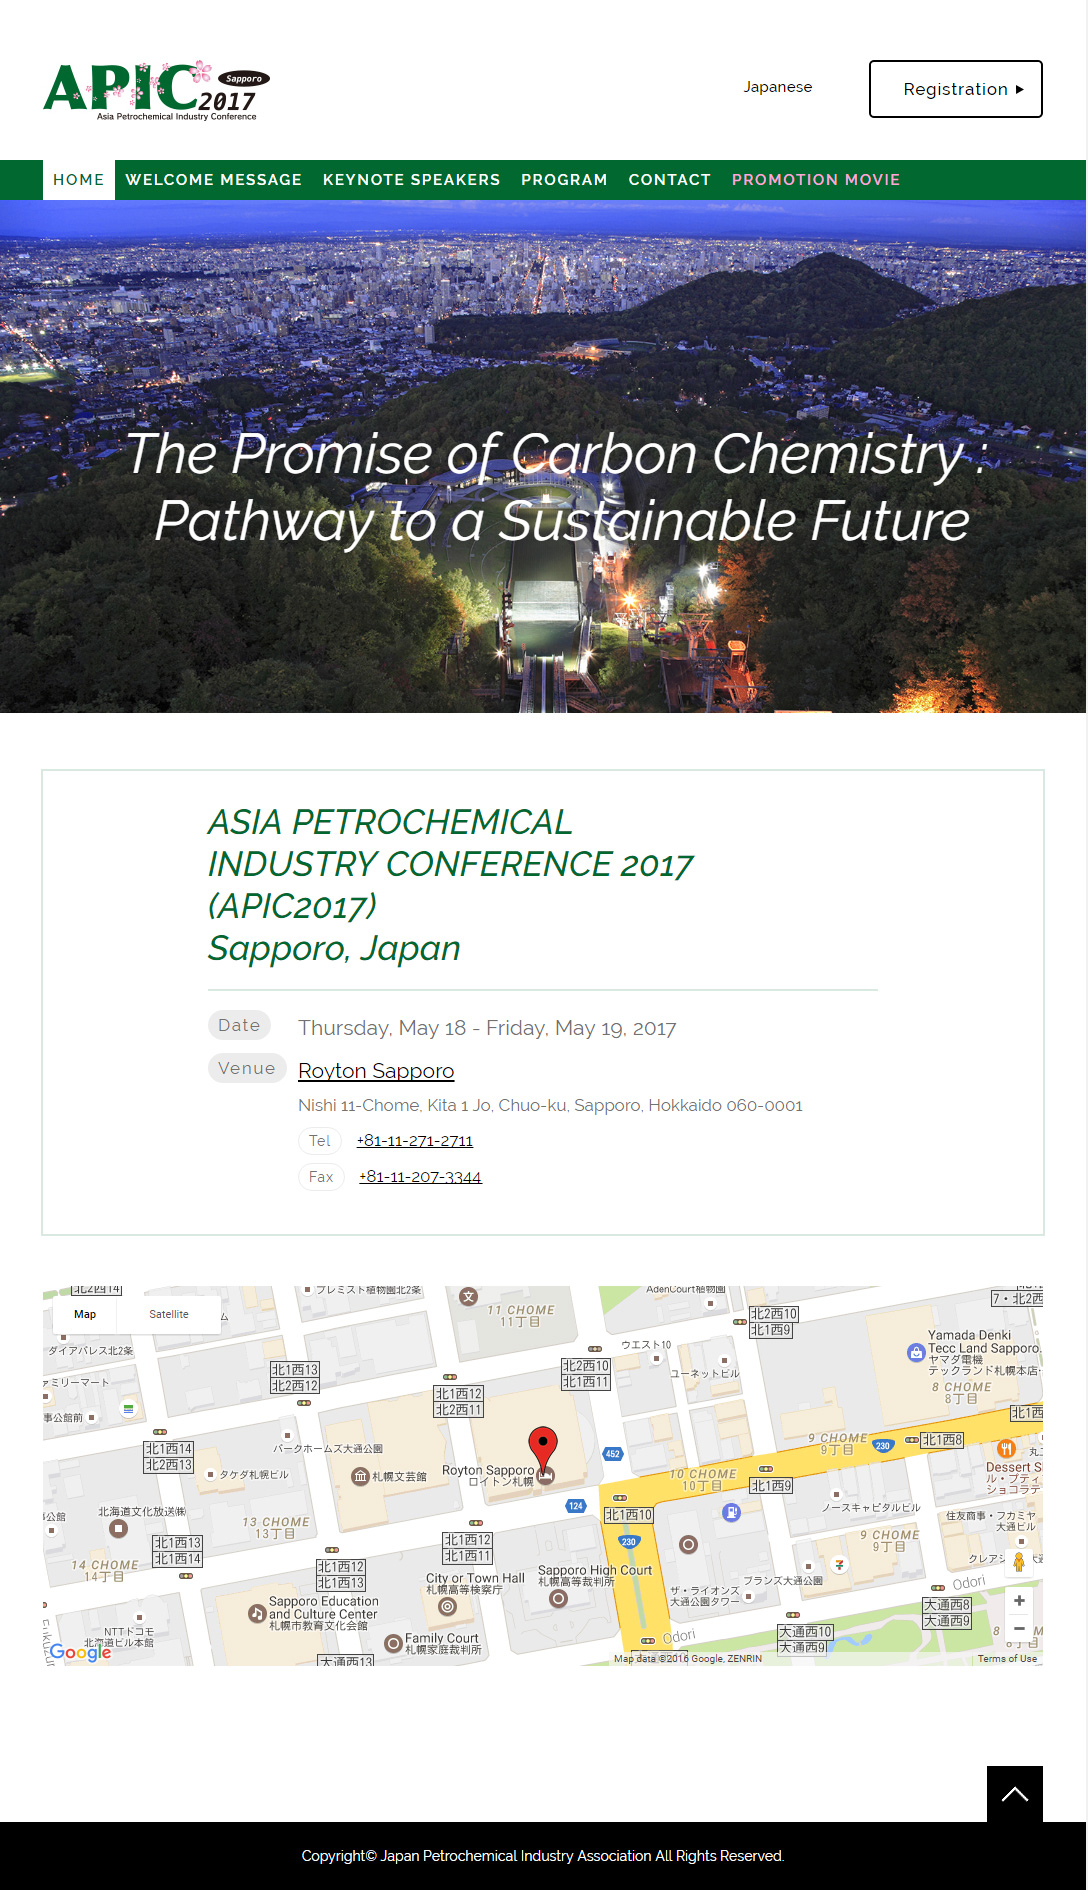 Asian petrochemical industry conference